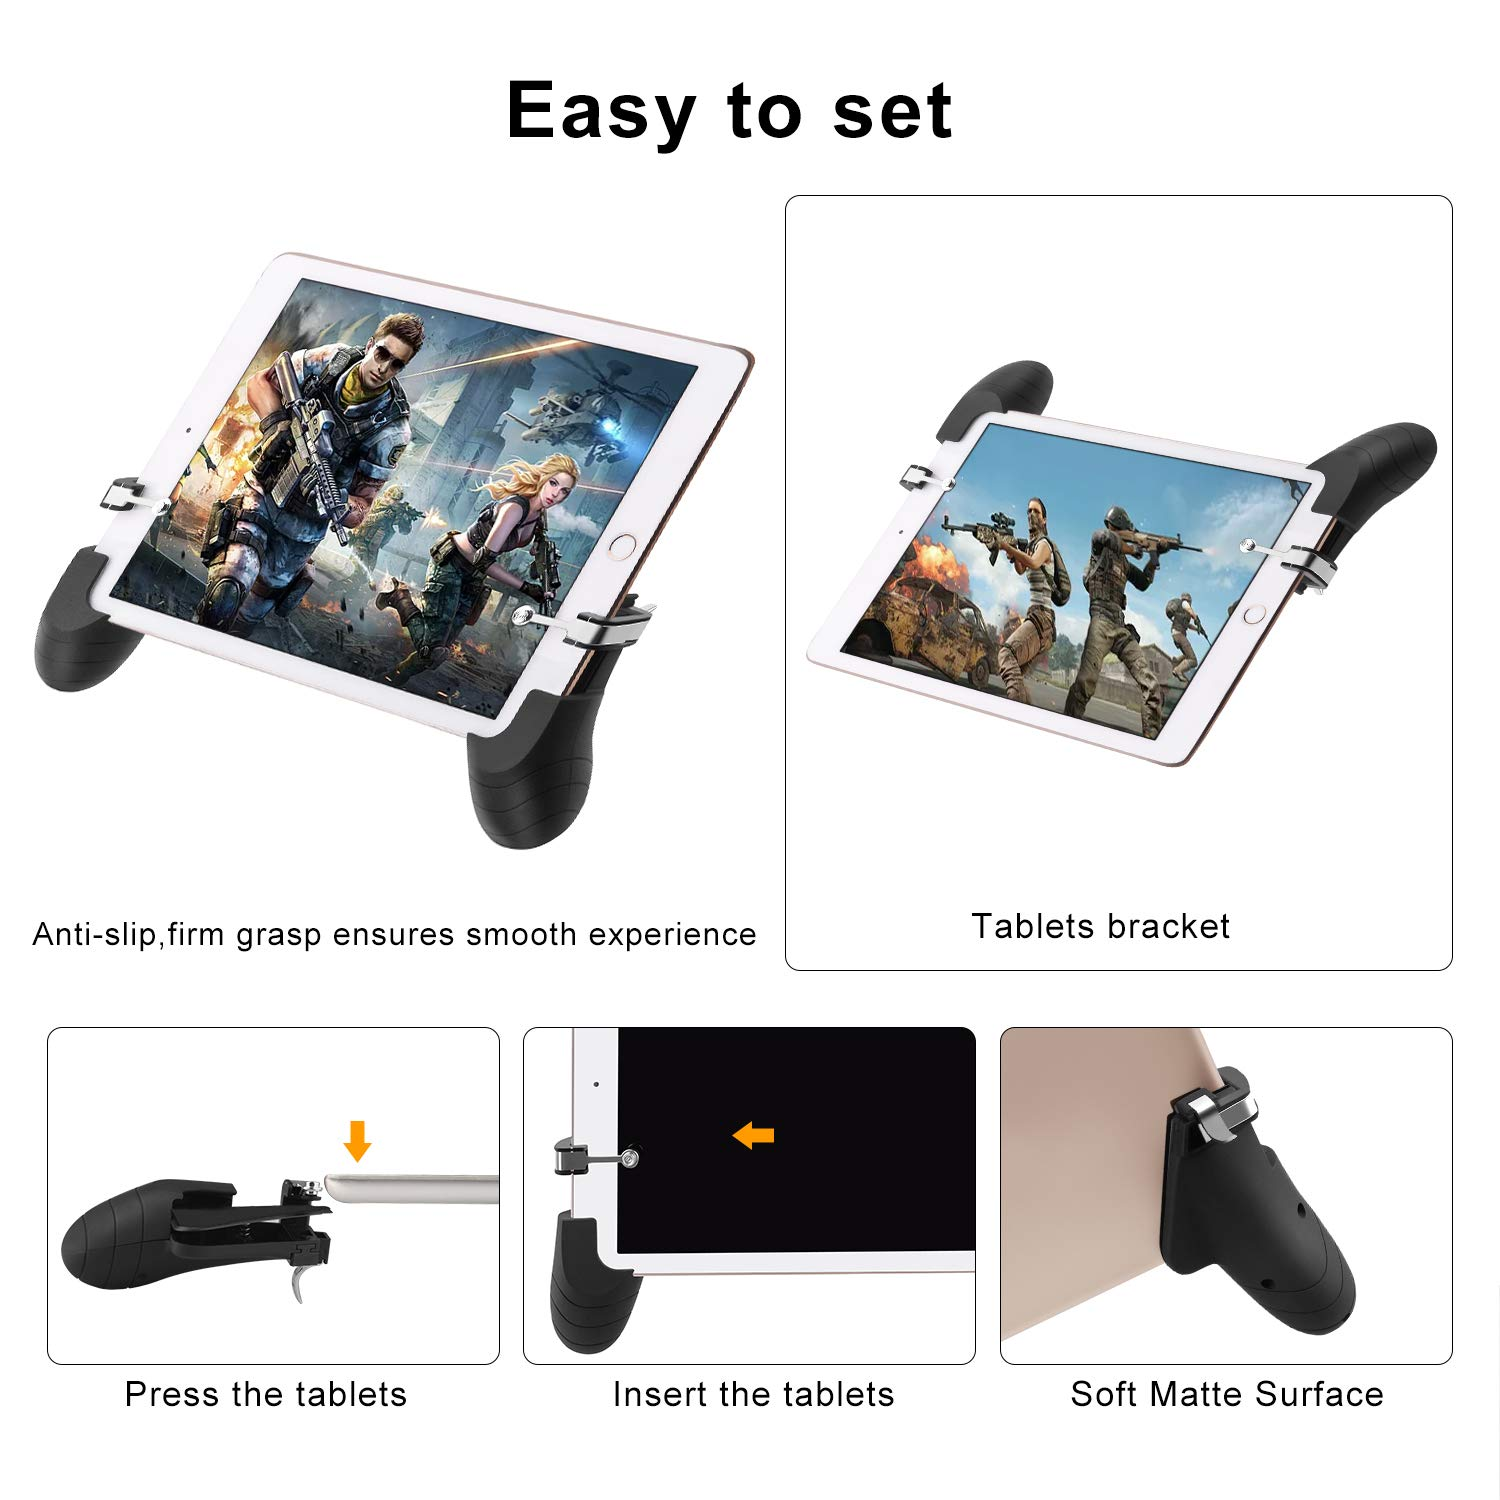 AnoKe Tablet Controller 2 Controller Tablet Game Trigger//Mobile Gaming Controller Compatible with Android Tablet iOS